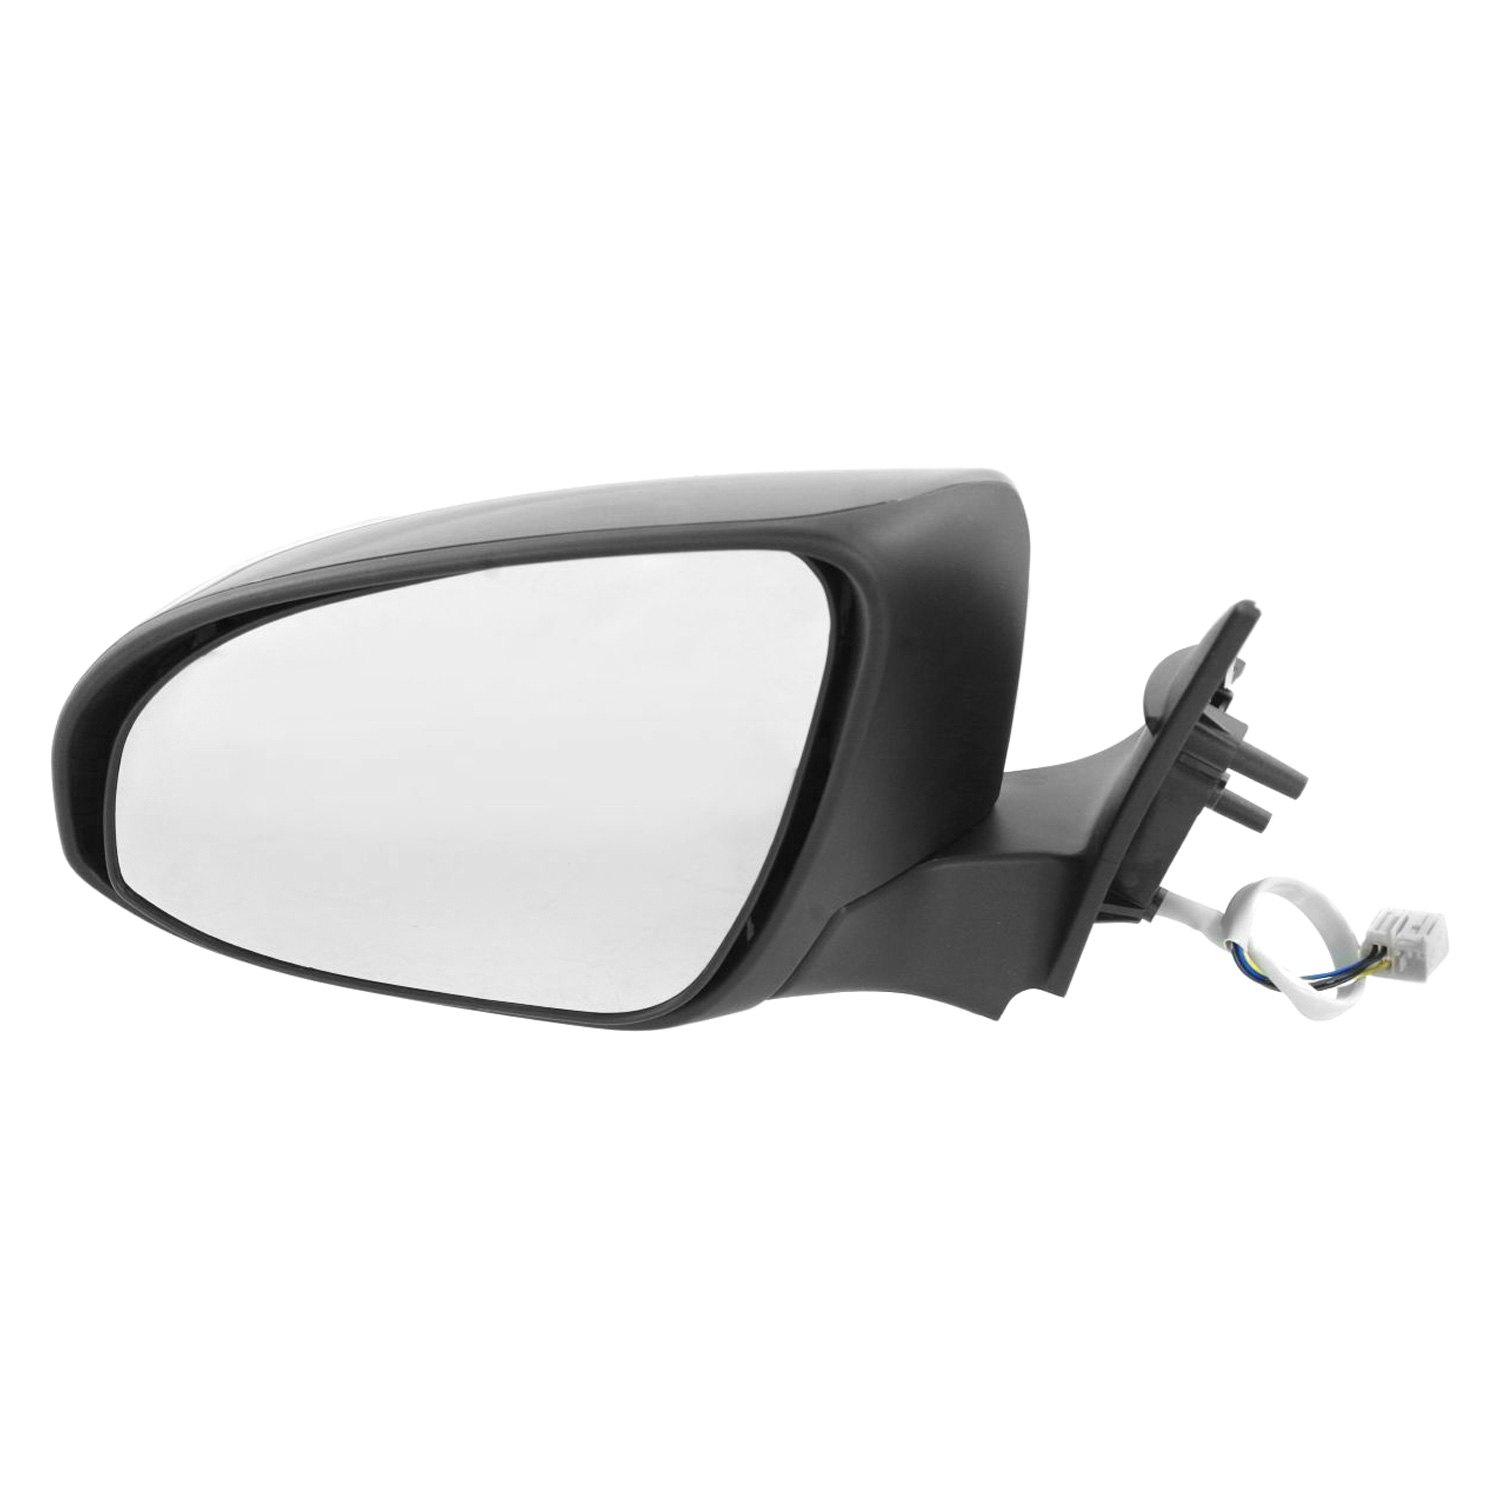 Replace driver side power view mirror